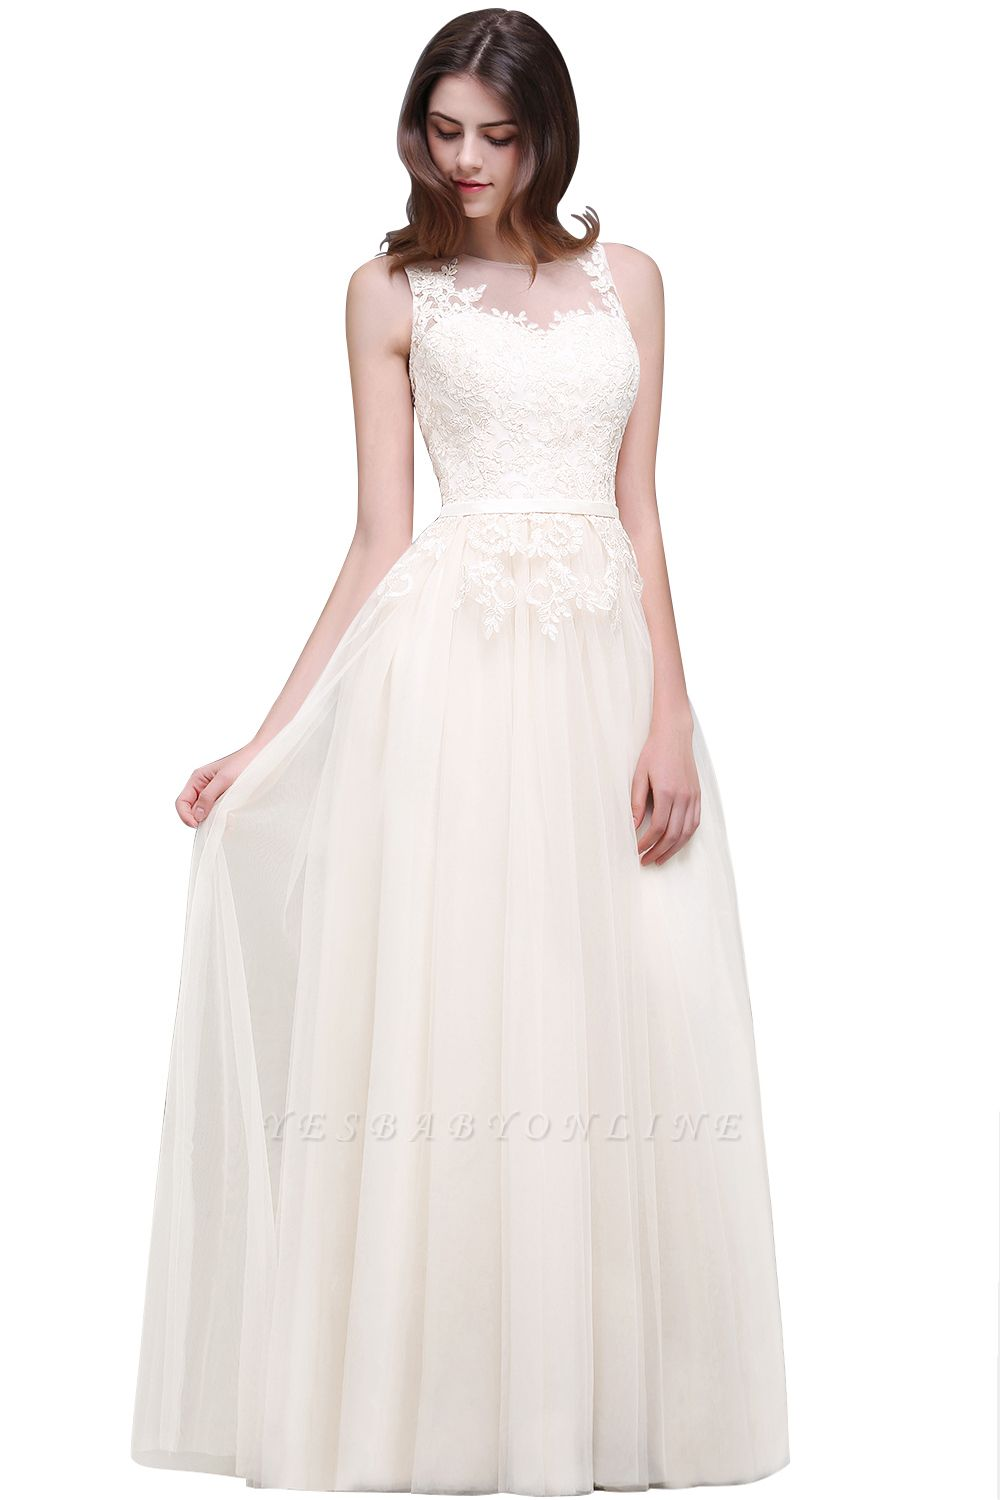 Lace-Appliques Prom Champagne Charming Sleeveless  Scoop-Neckline Party Dress